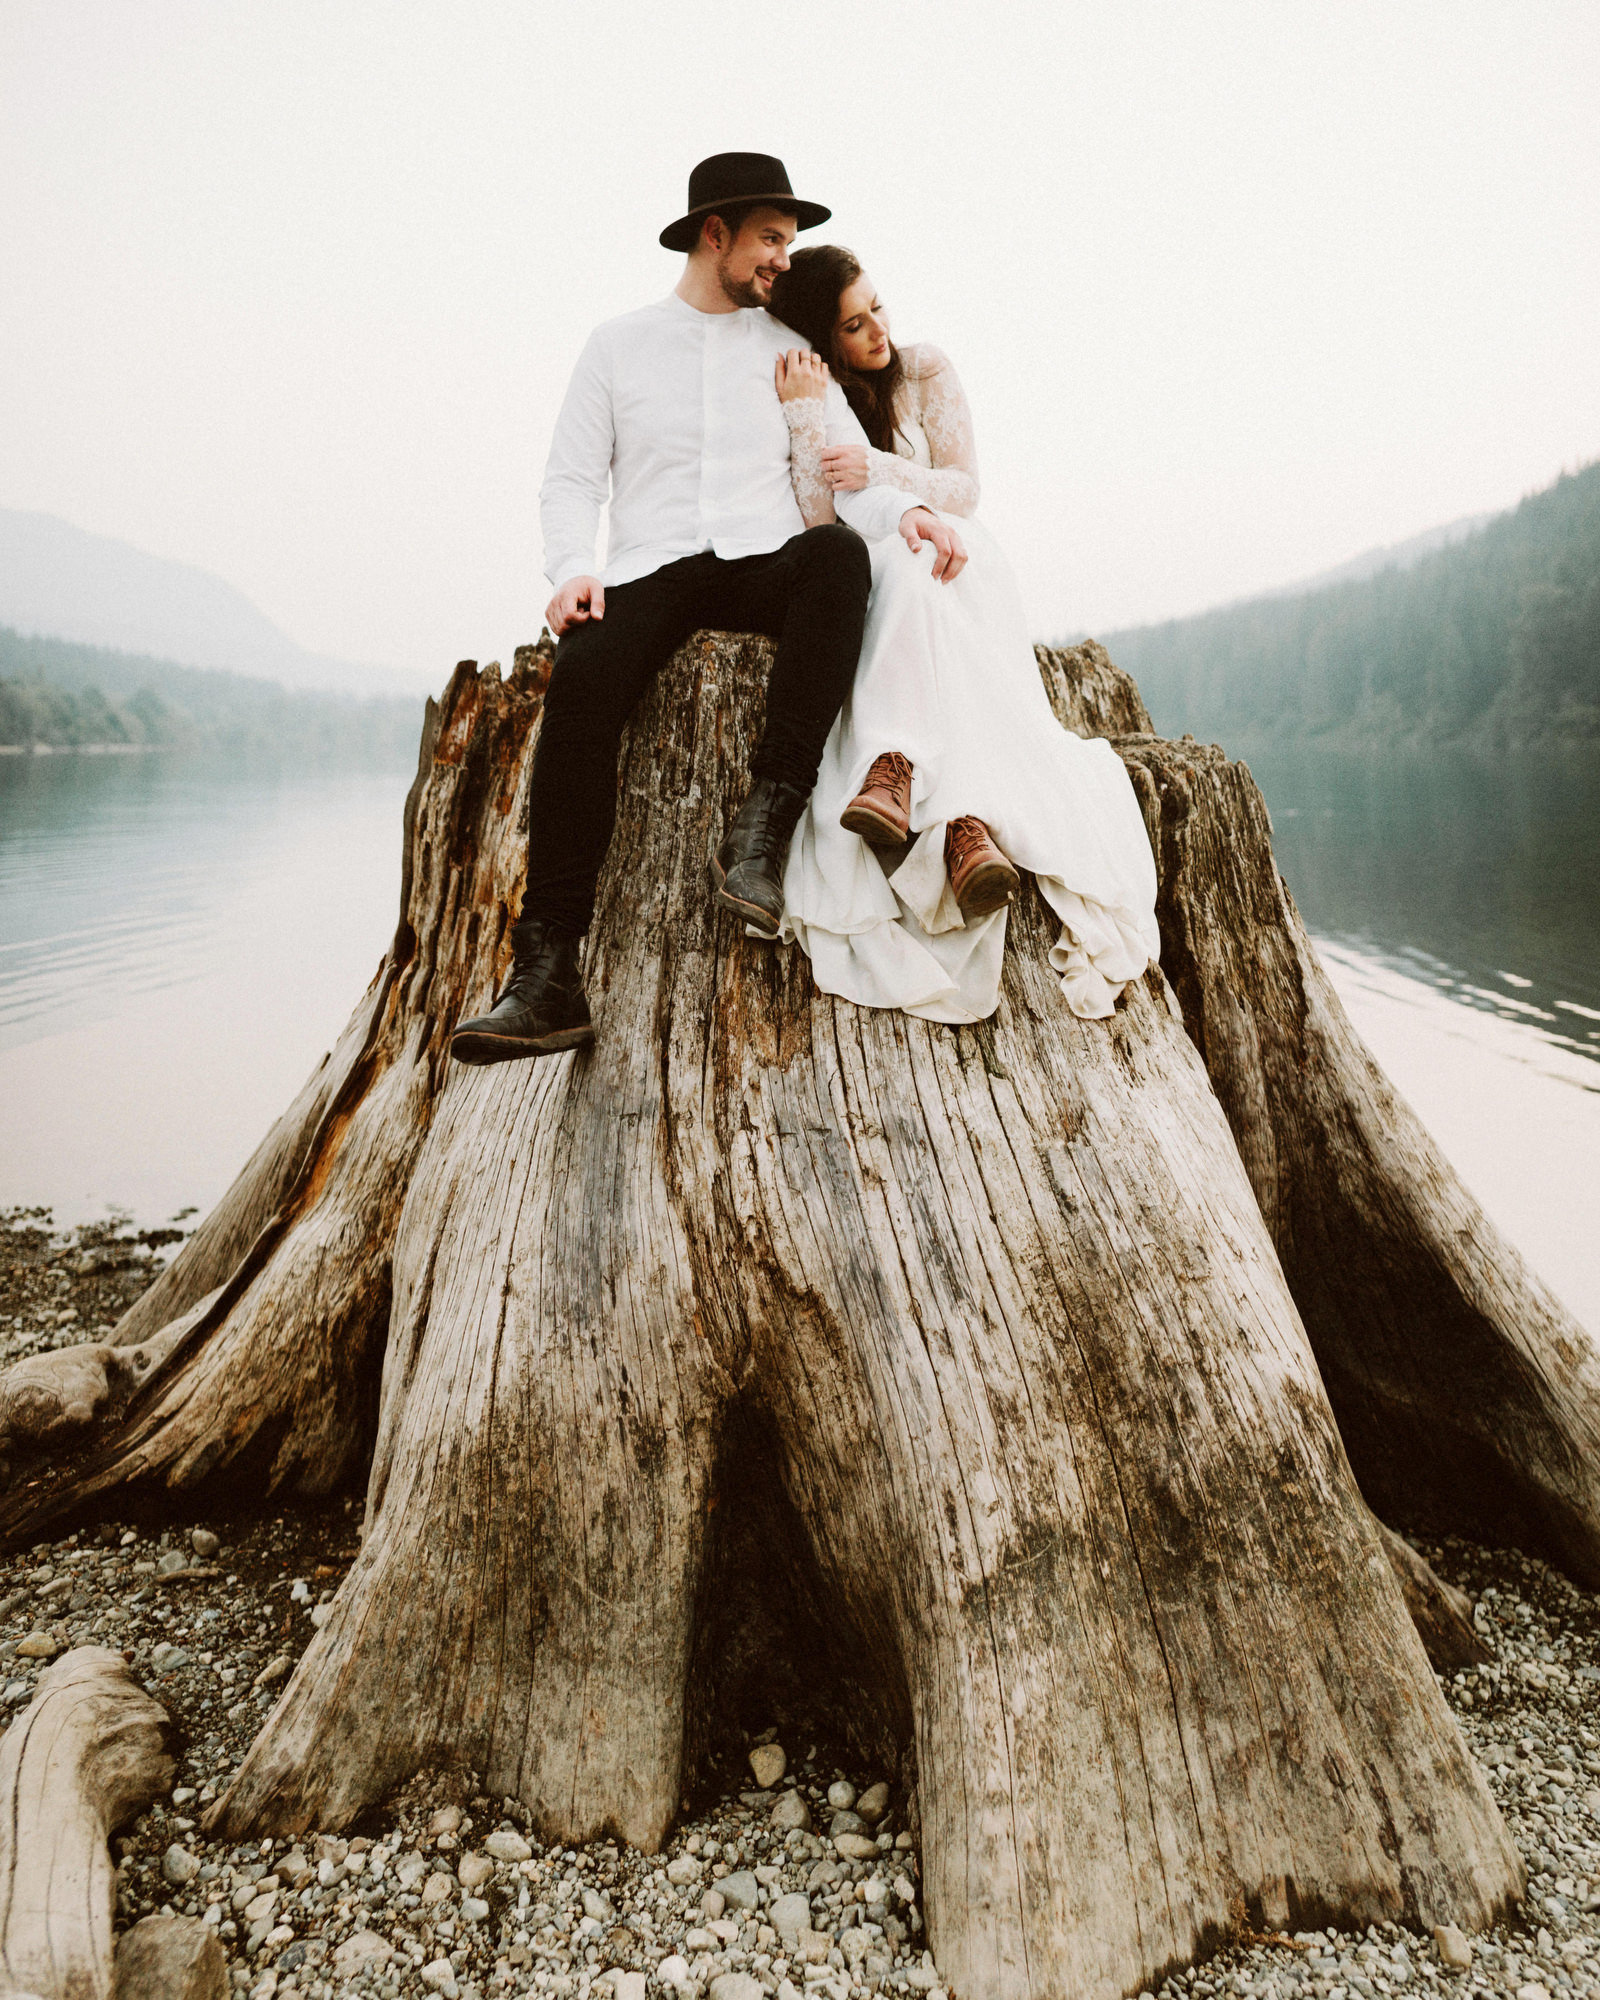 athena-and-camron-seattle-elopement-wedding-benj-haisch-rattlesnake-lake-christian-couple-goals89